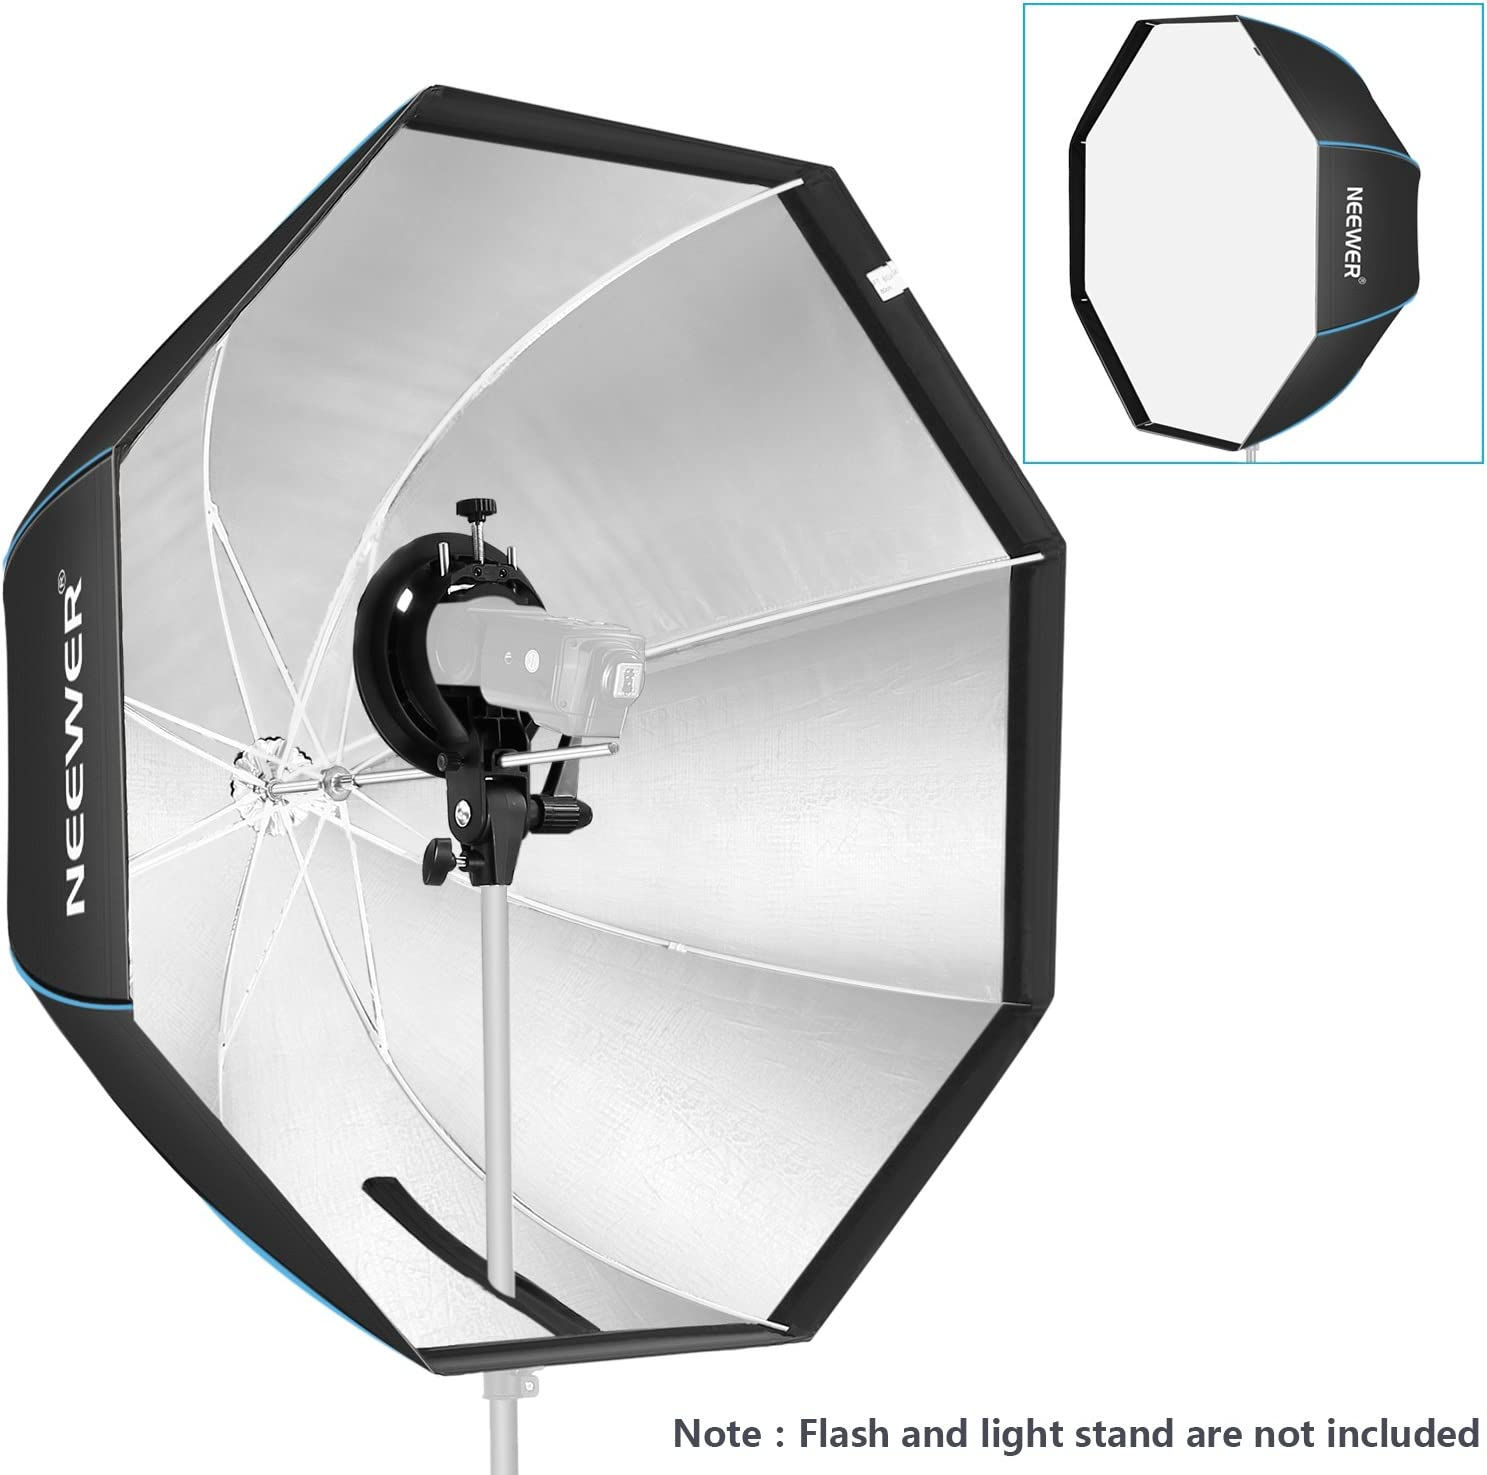 Neewer 32 inches//80 centimeters Octagonal Softbox with S-Type Bracket Holder and Carrying Bag for Speedlite Studio Flash Monolight Portrait and Product Photography with Bowens Mount